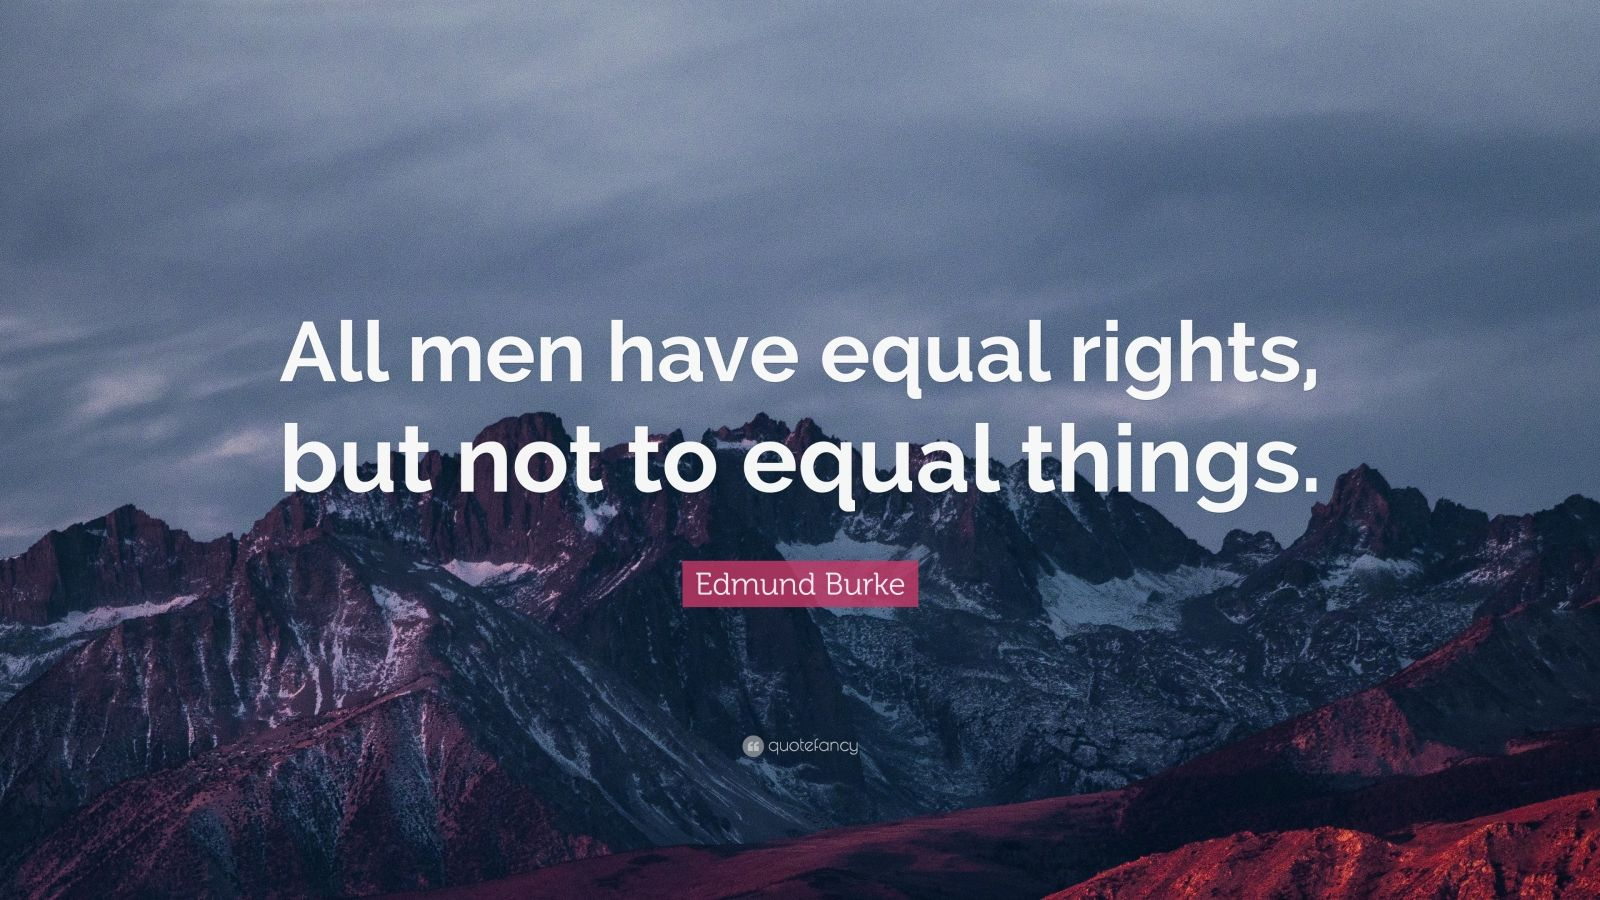 """Edmund Burke Quote: """"All men have equal rights, but not to equal things."""""""